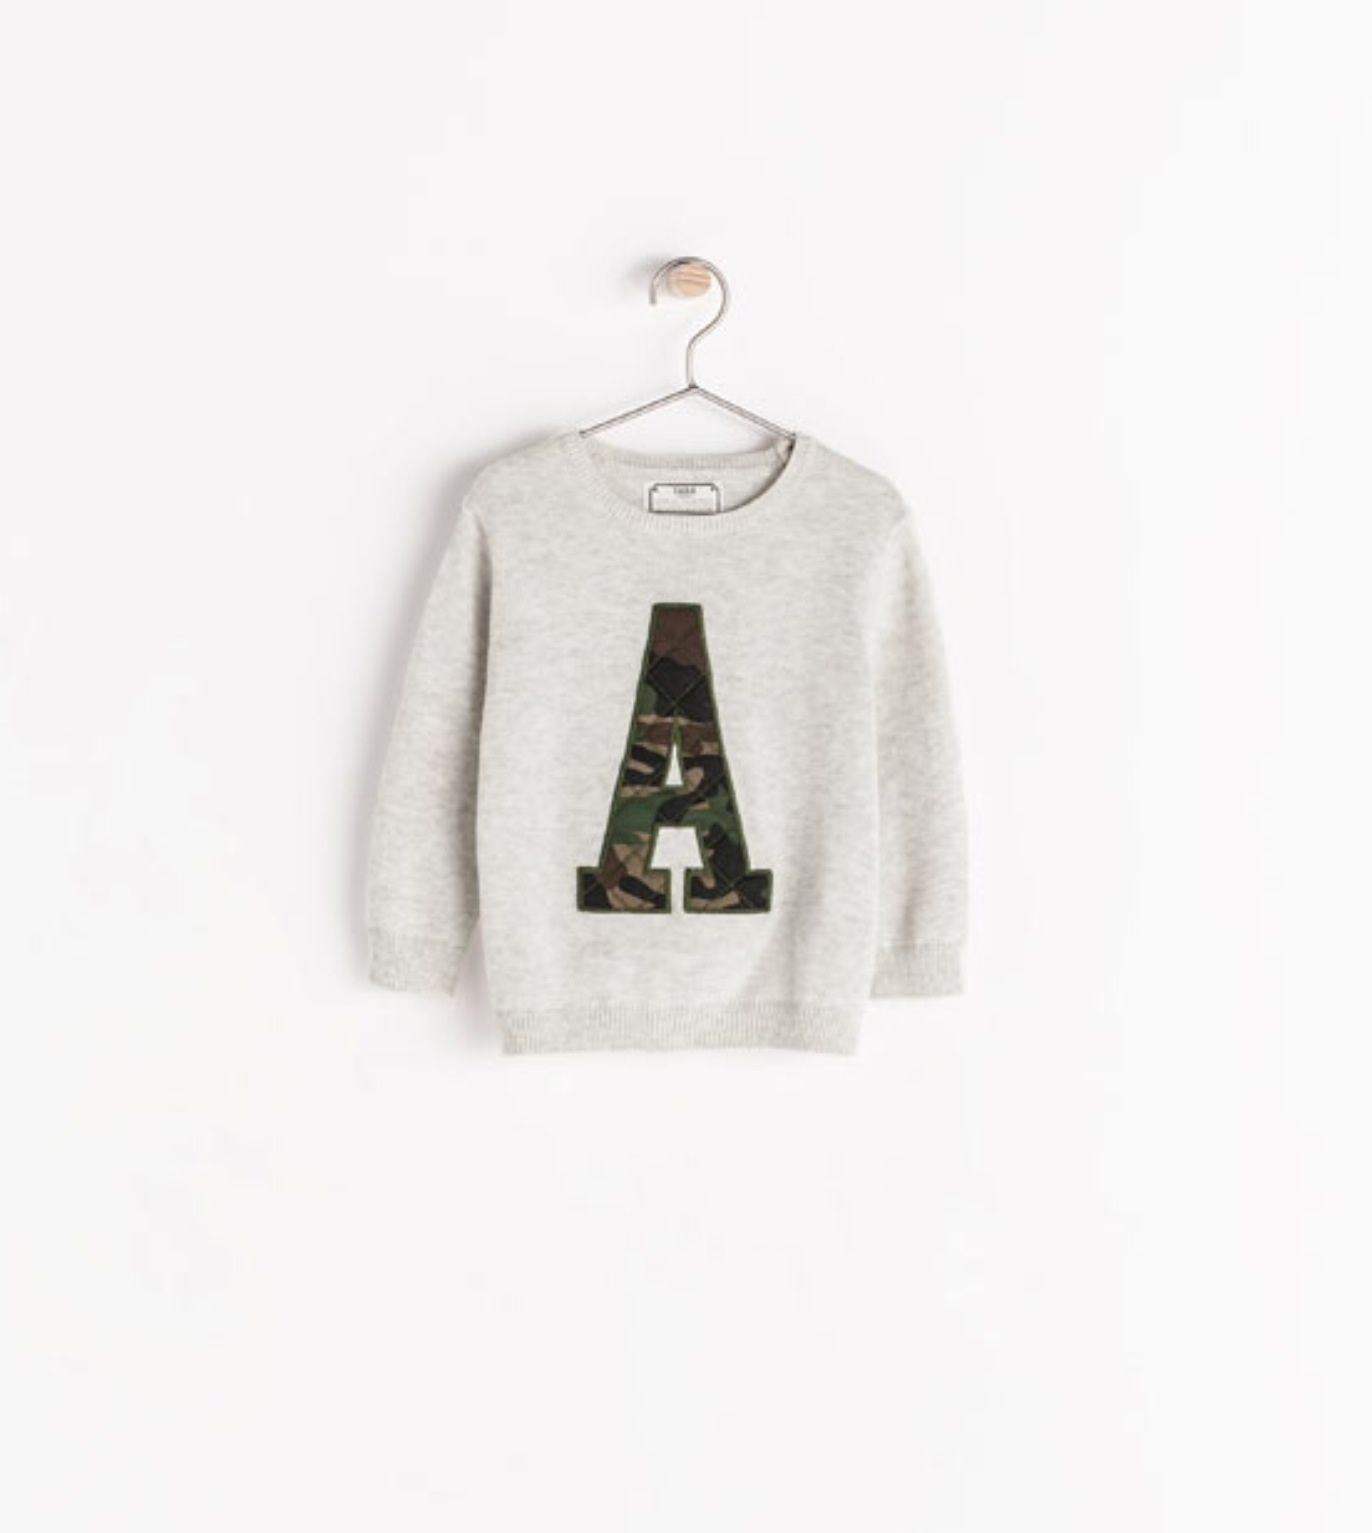 Zara Letter Sweater